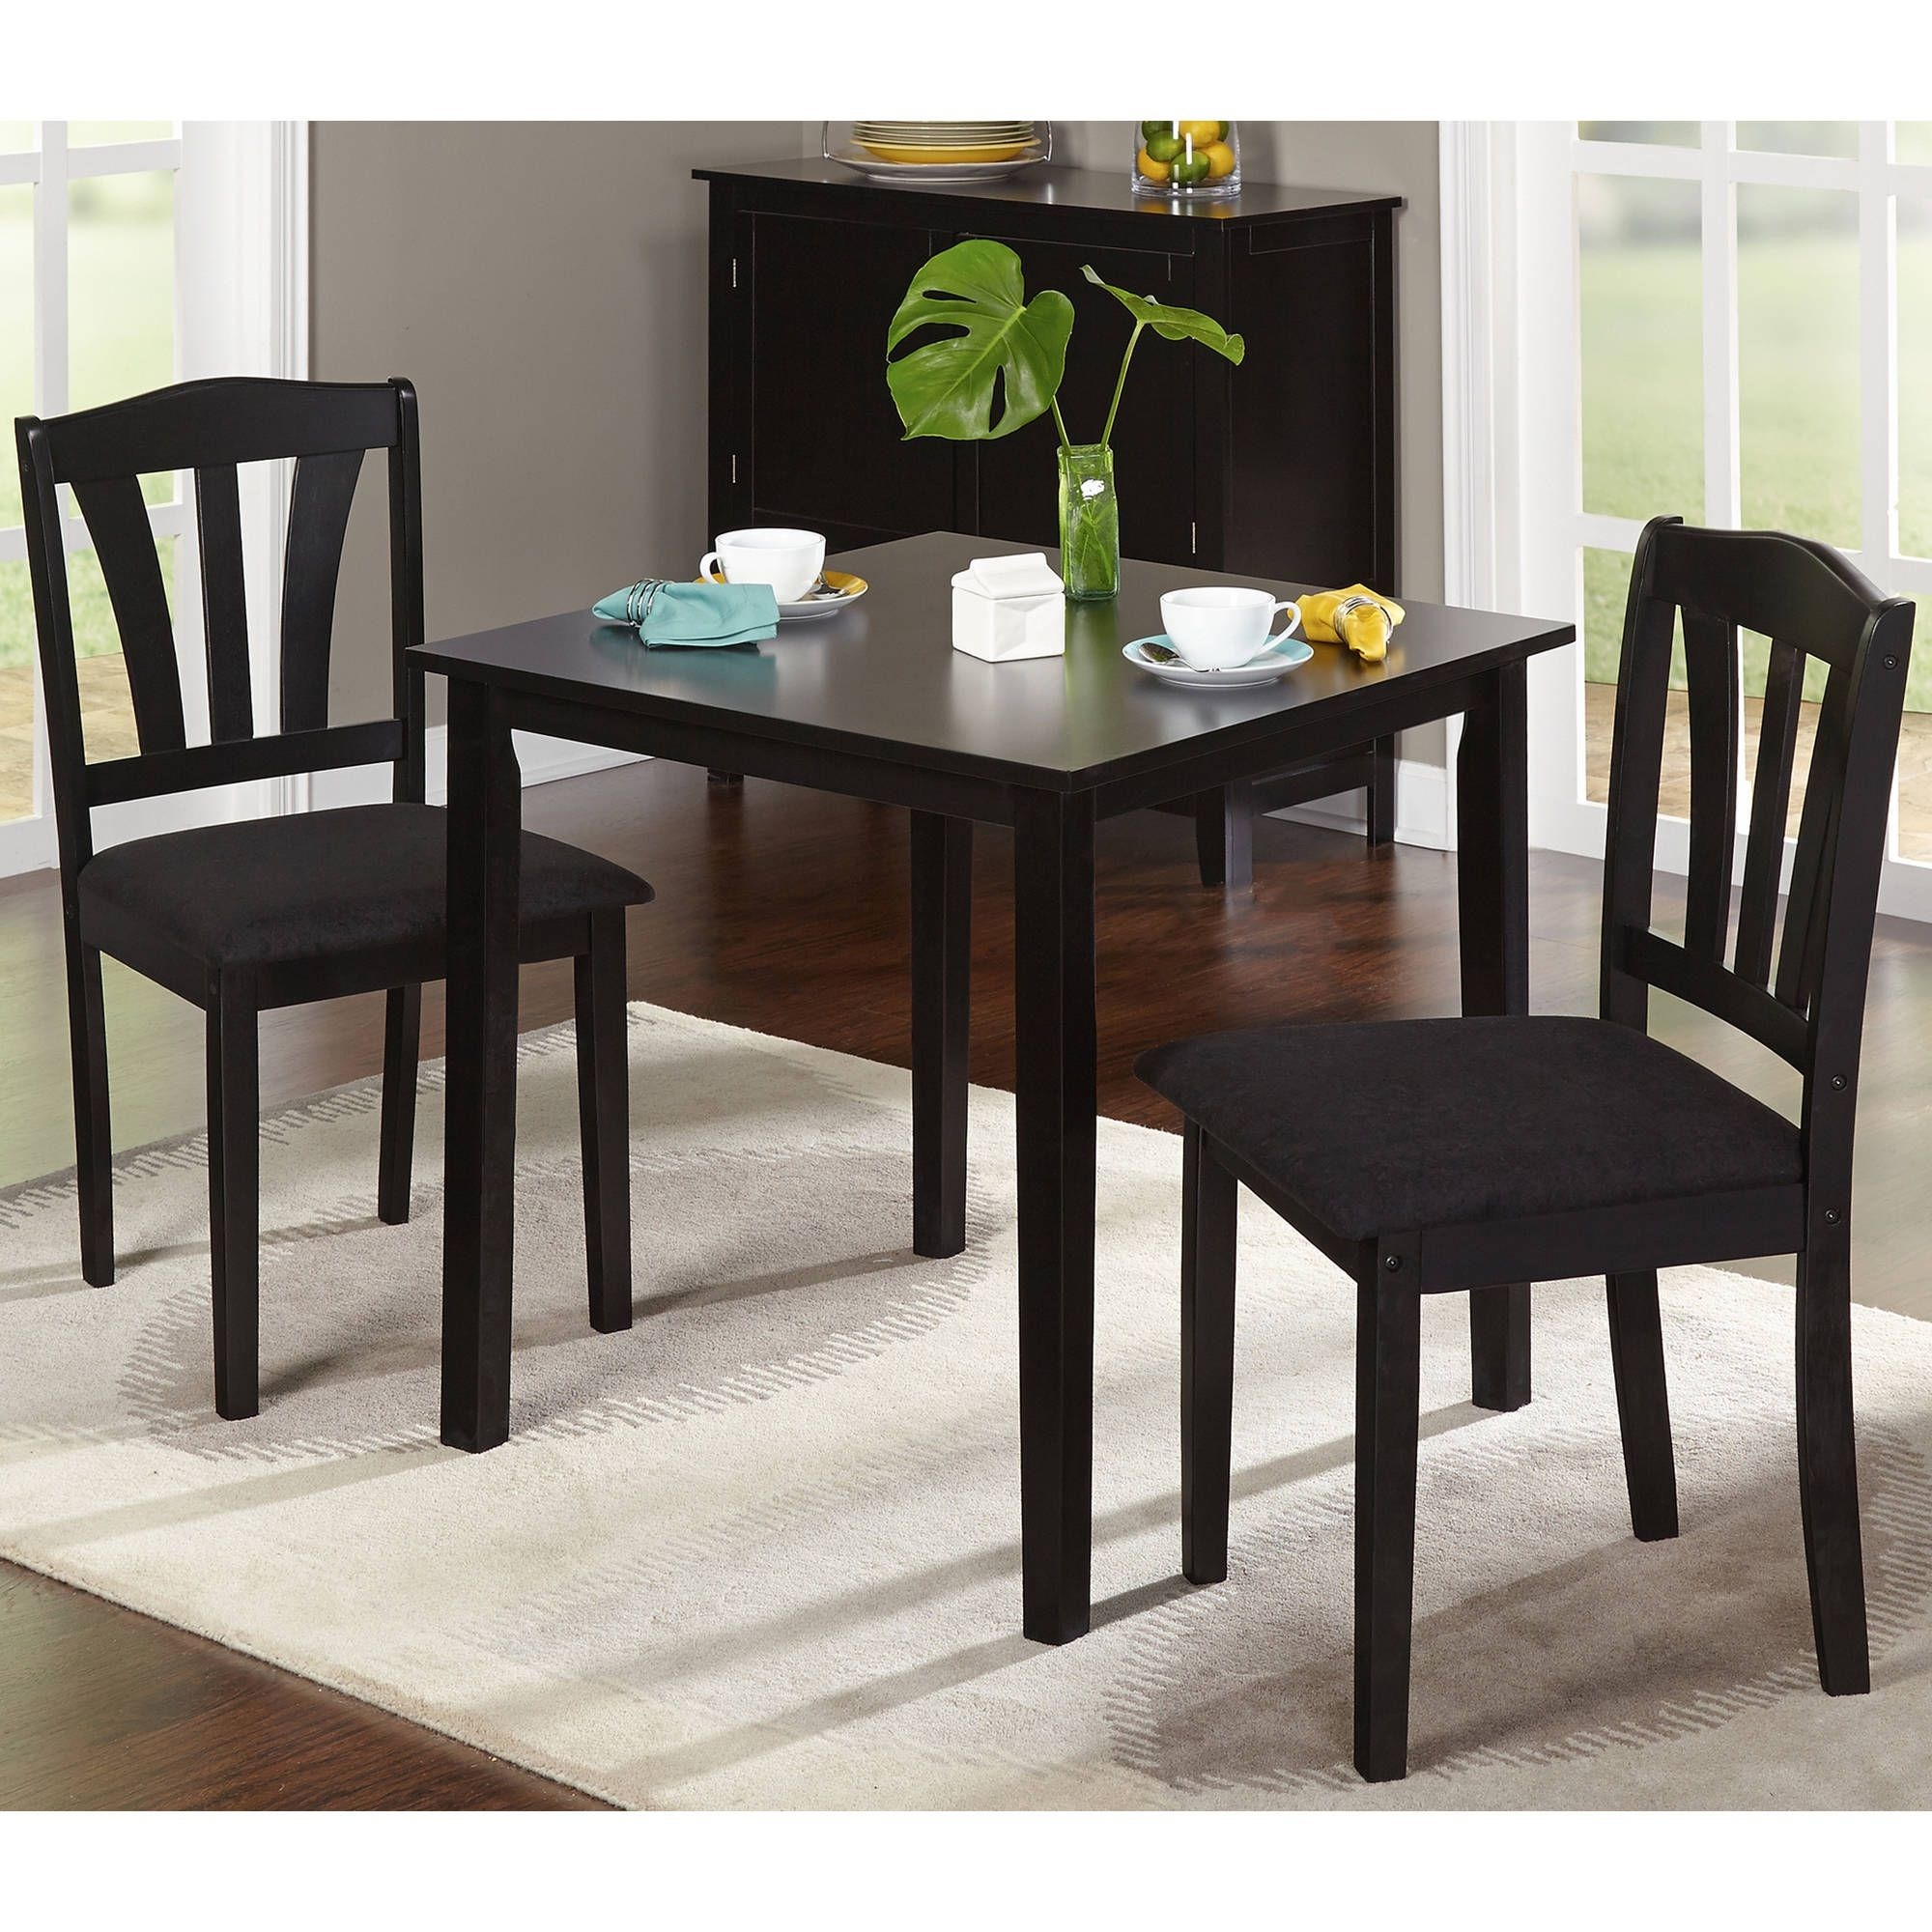 Metropolitan 3Piece Dining Set Multiple Finishes  Walmart